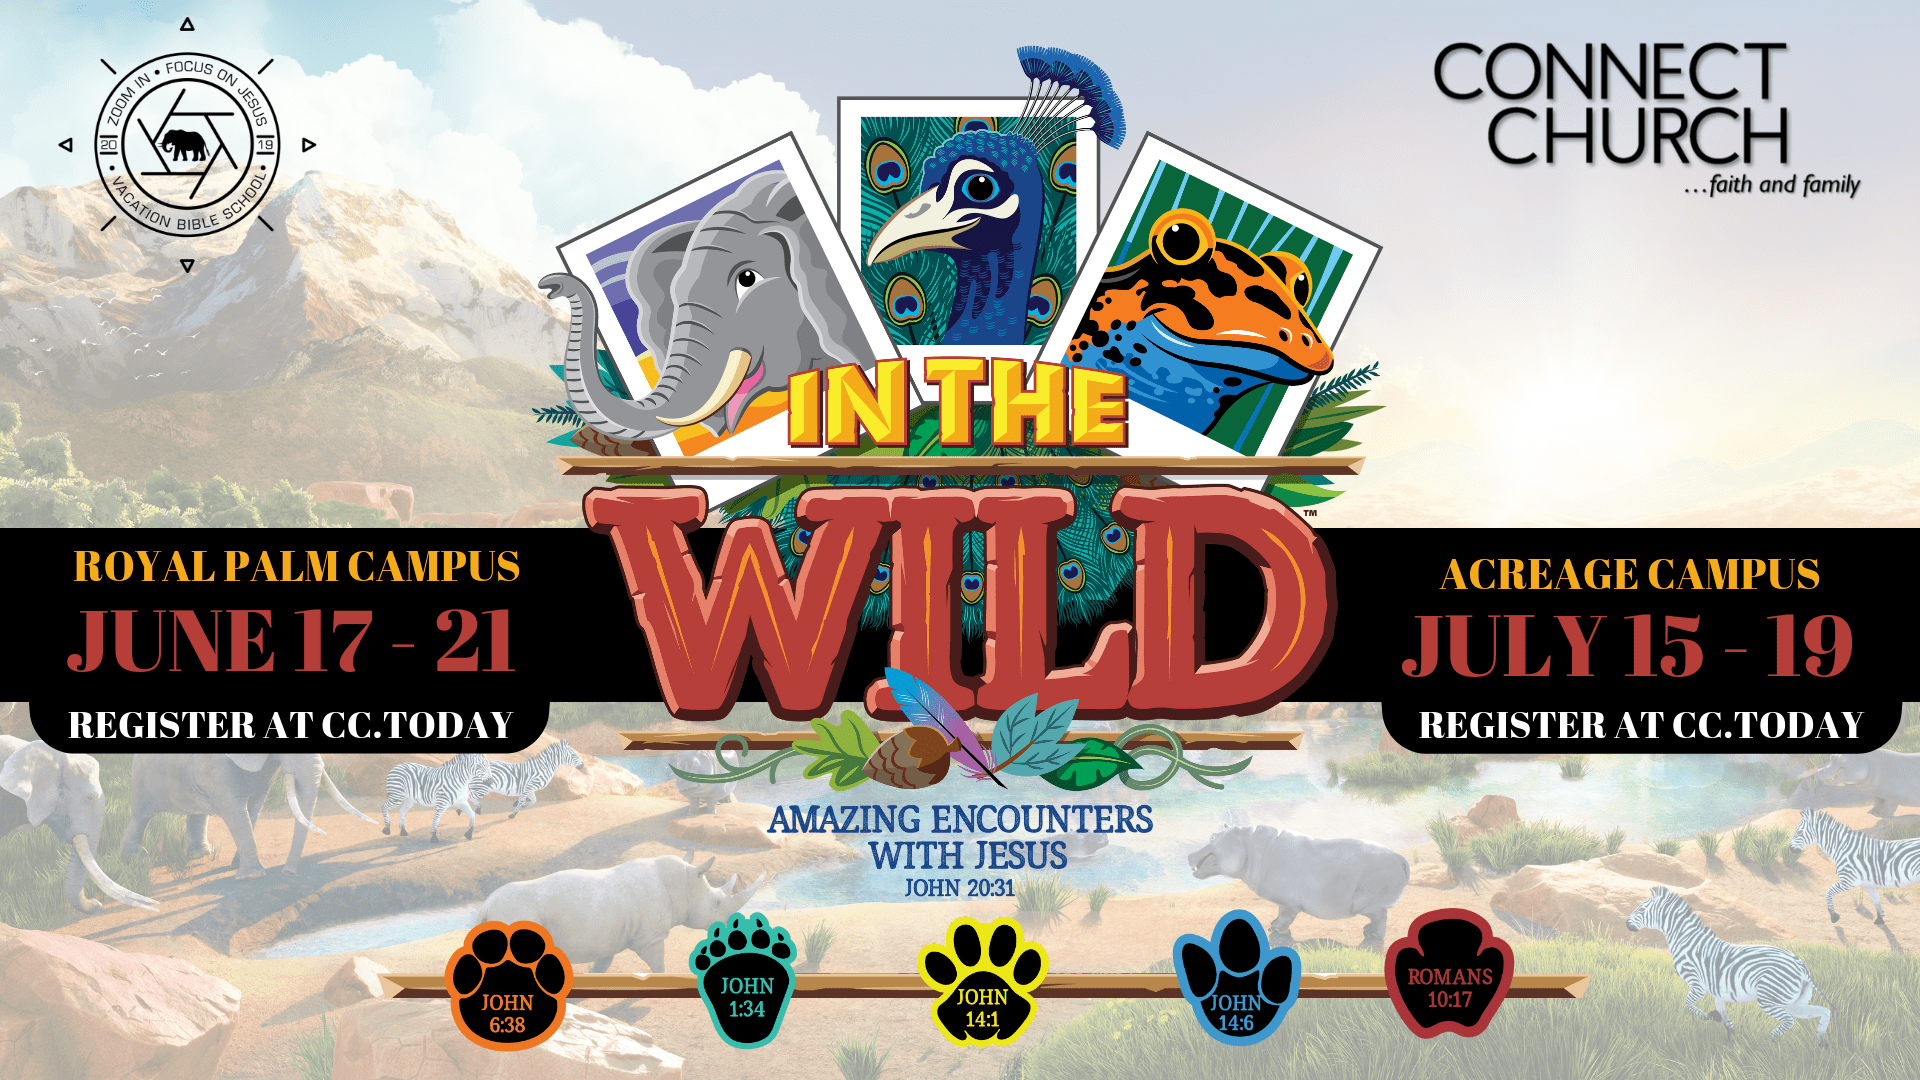 In The Wild – Both Campuses